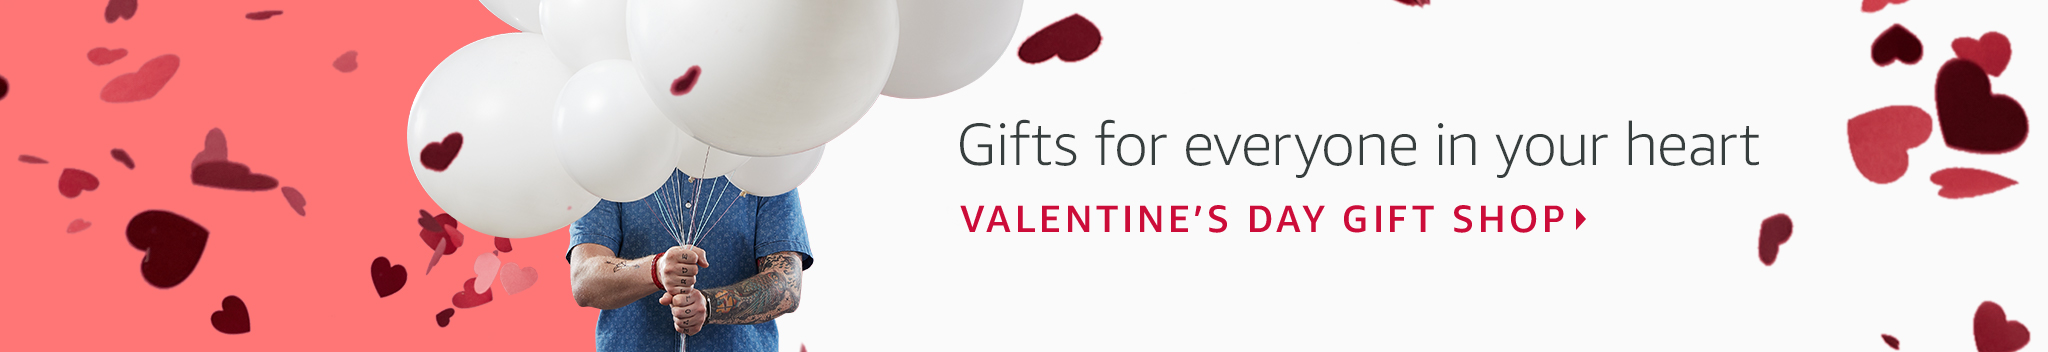 gifts for everyone in your heart